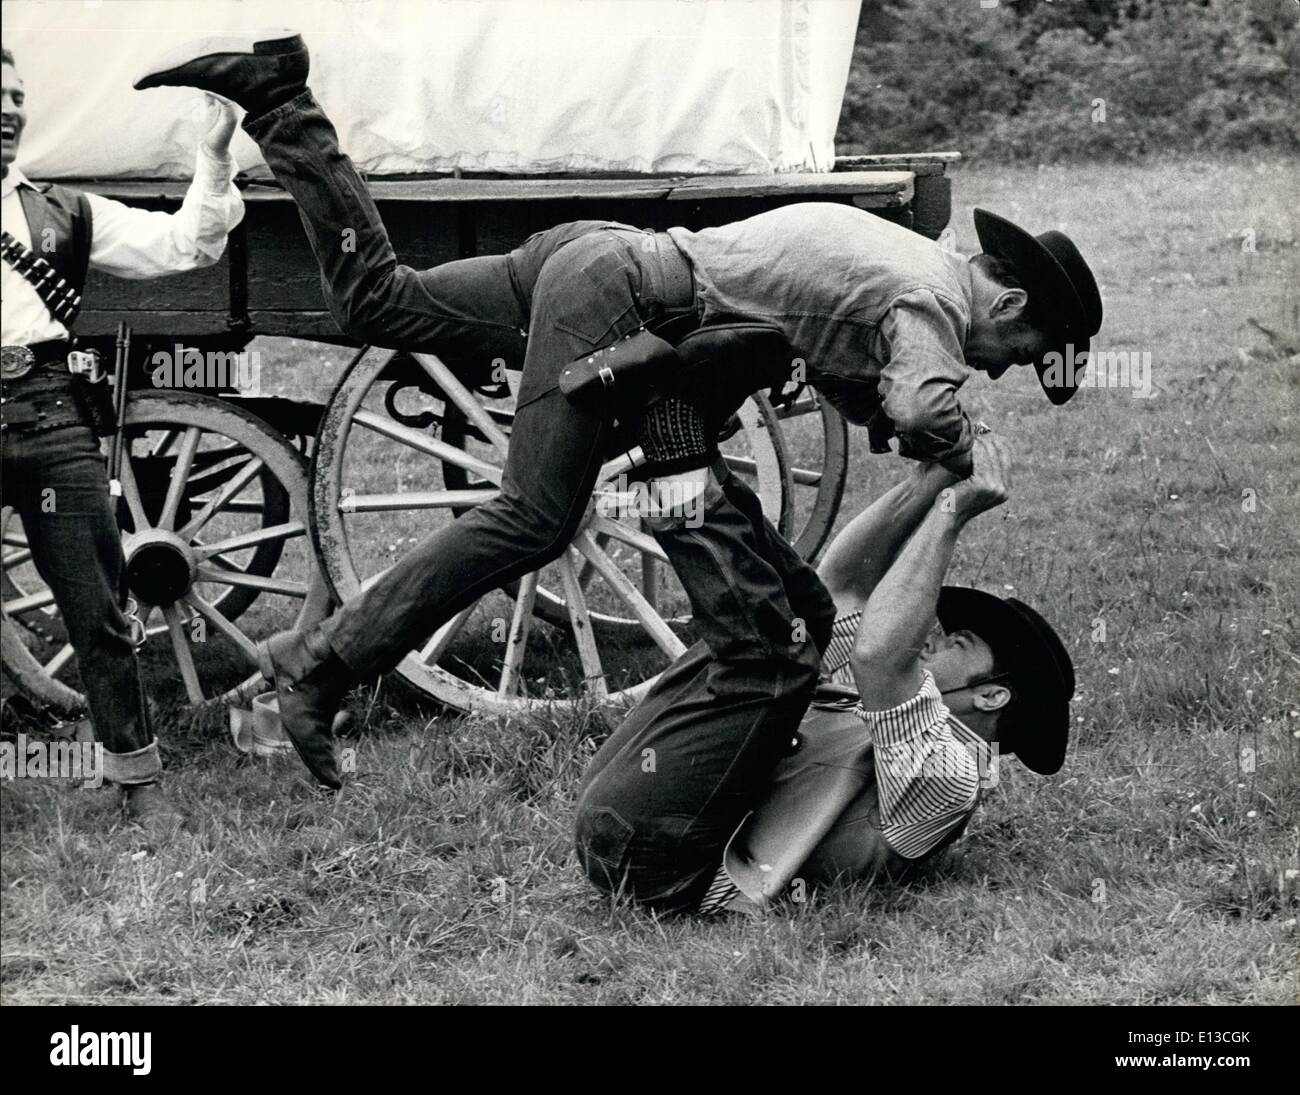 Mar. 02, 2012 - Members of the Remuds Western Club rehearse a fight sequence at their club in Chartridge, Bucks. - Stock Image